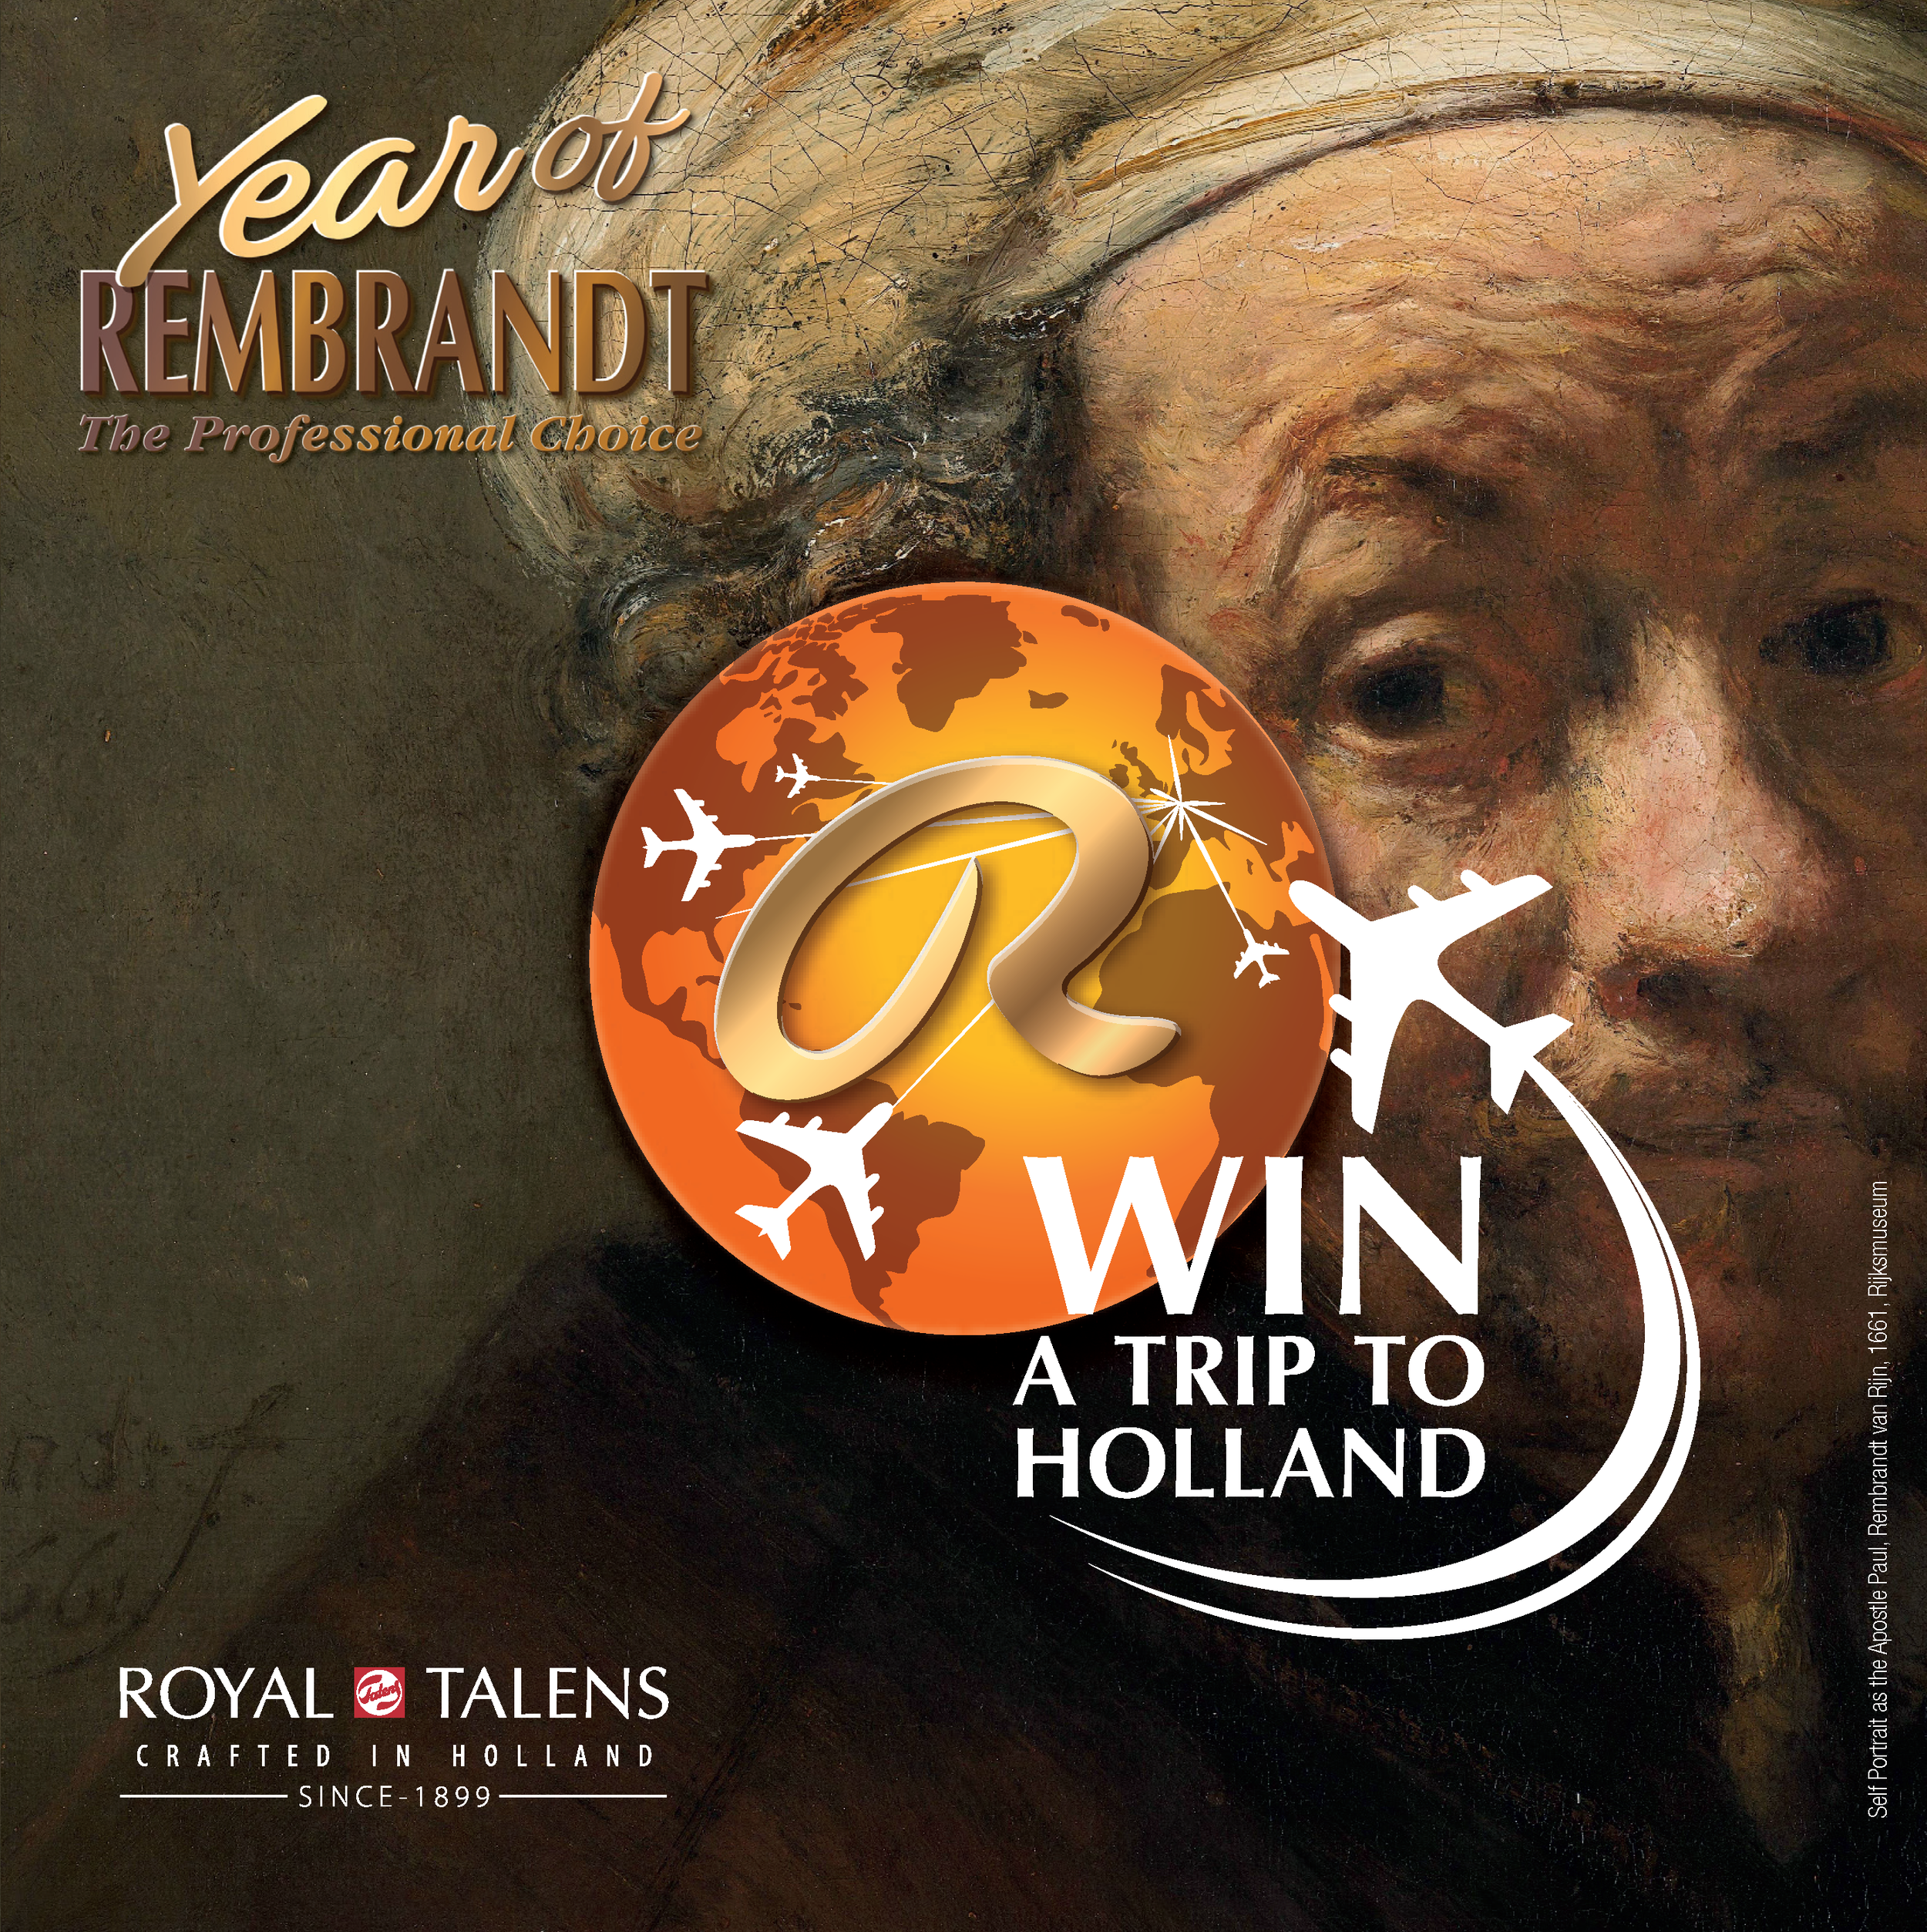 Rembrandt_Year_Social_Media_1.PNG